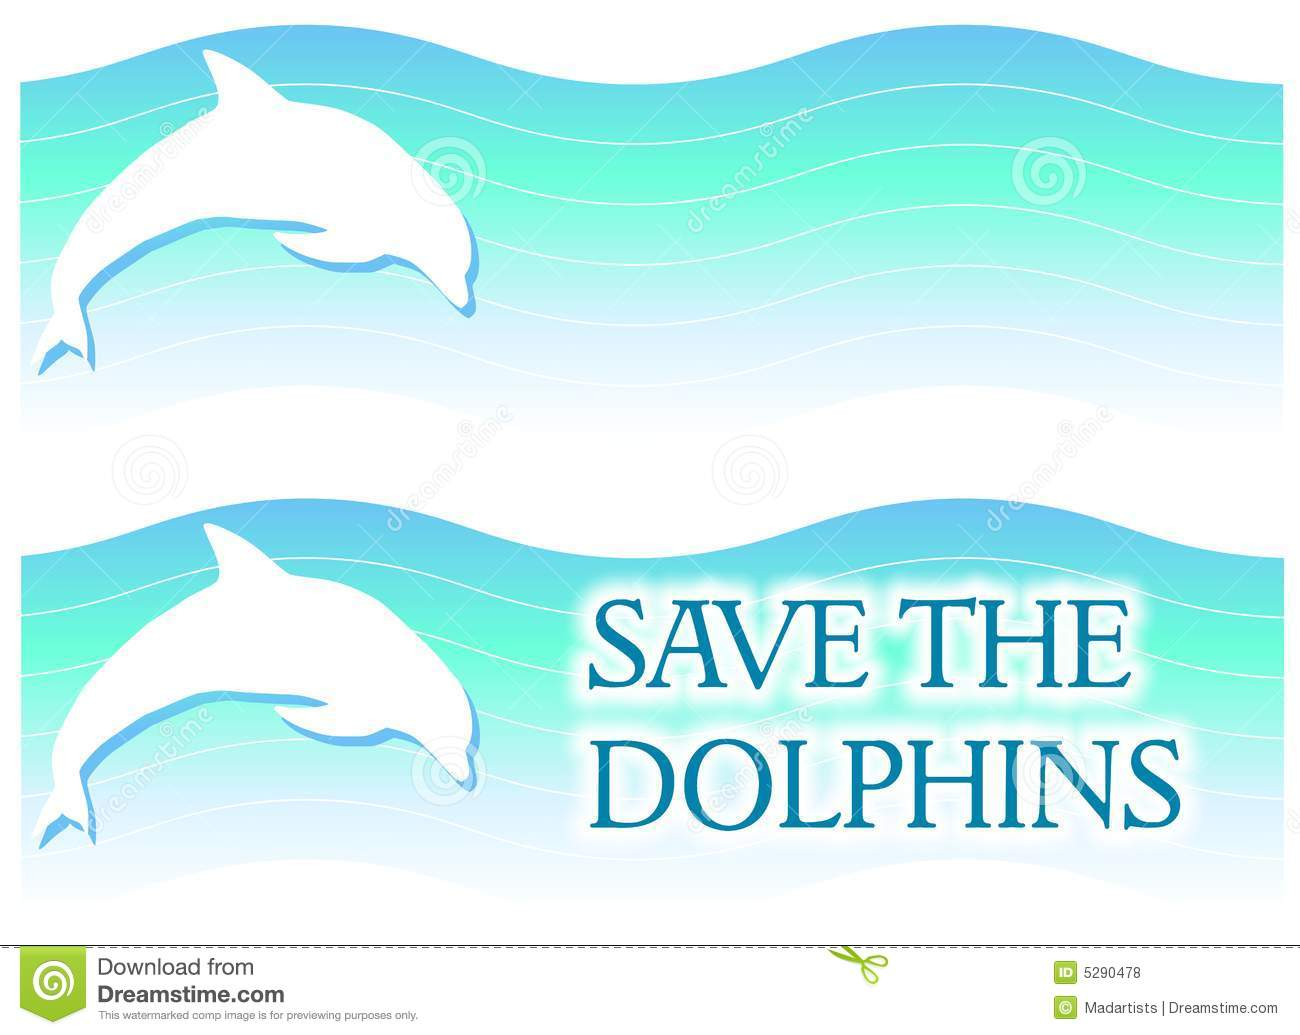 Dolphin Logos or Banners